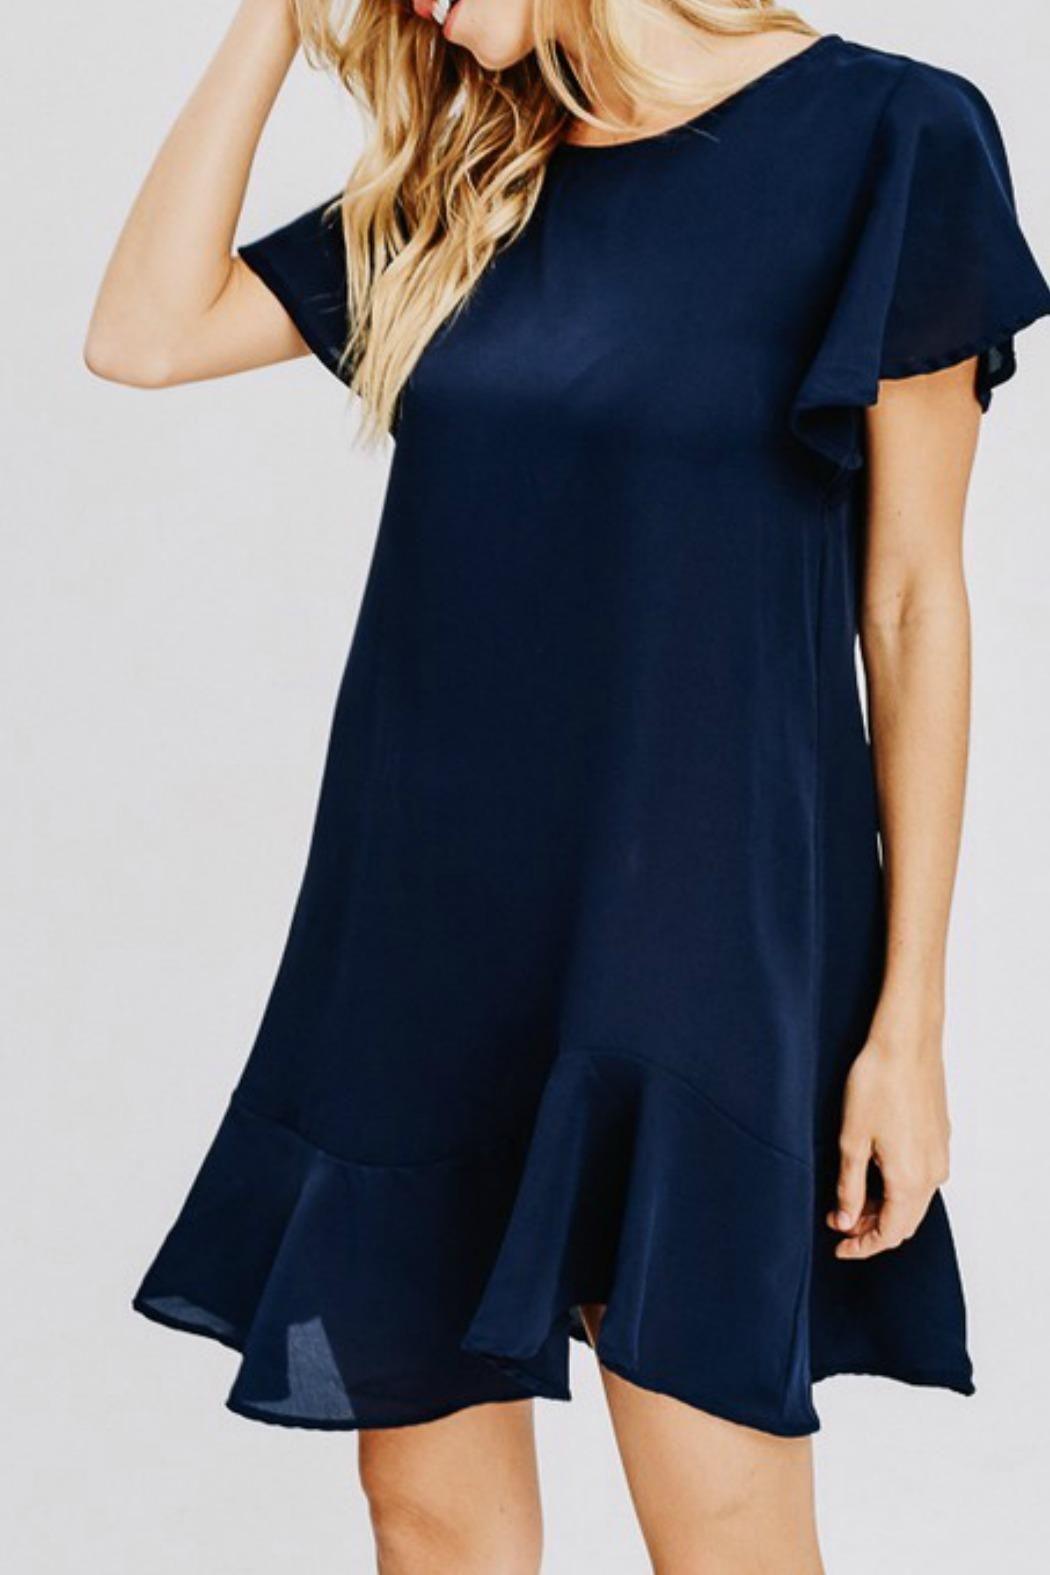 ee:some Newport Blues Dress - Front Full Image